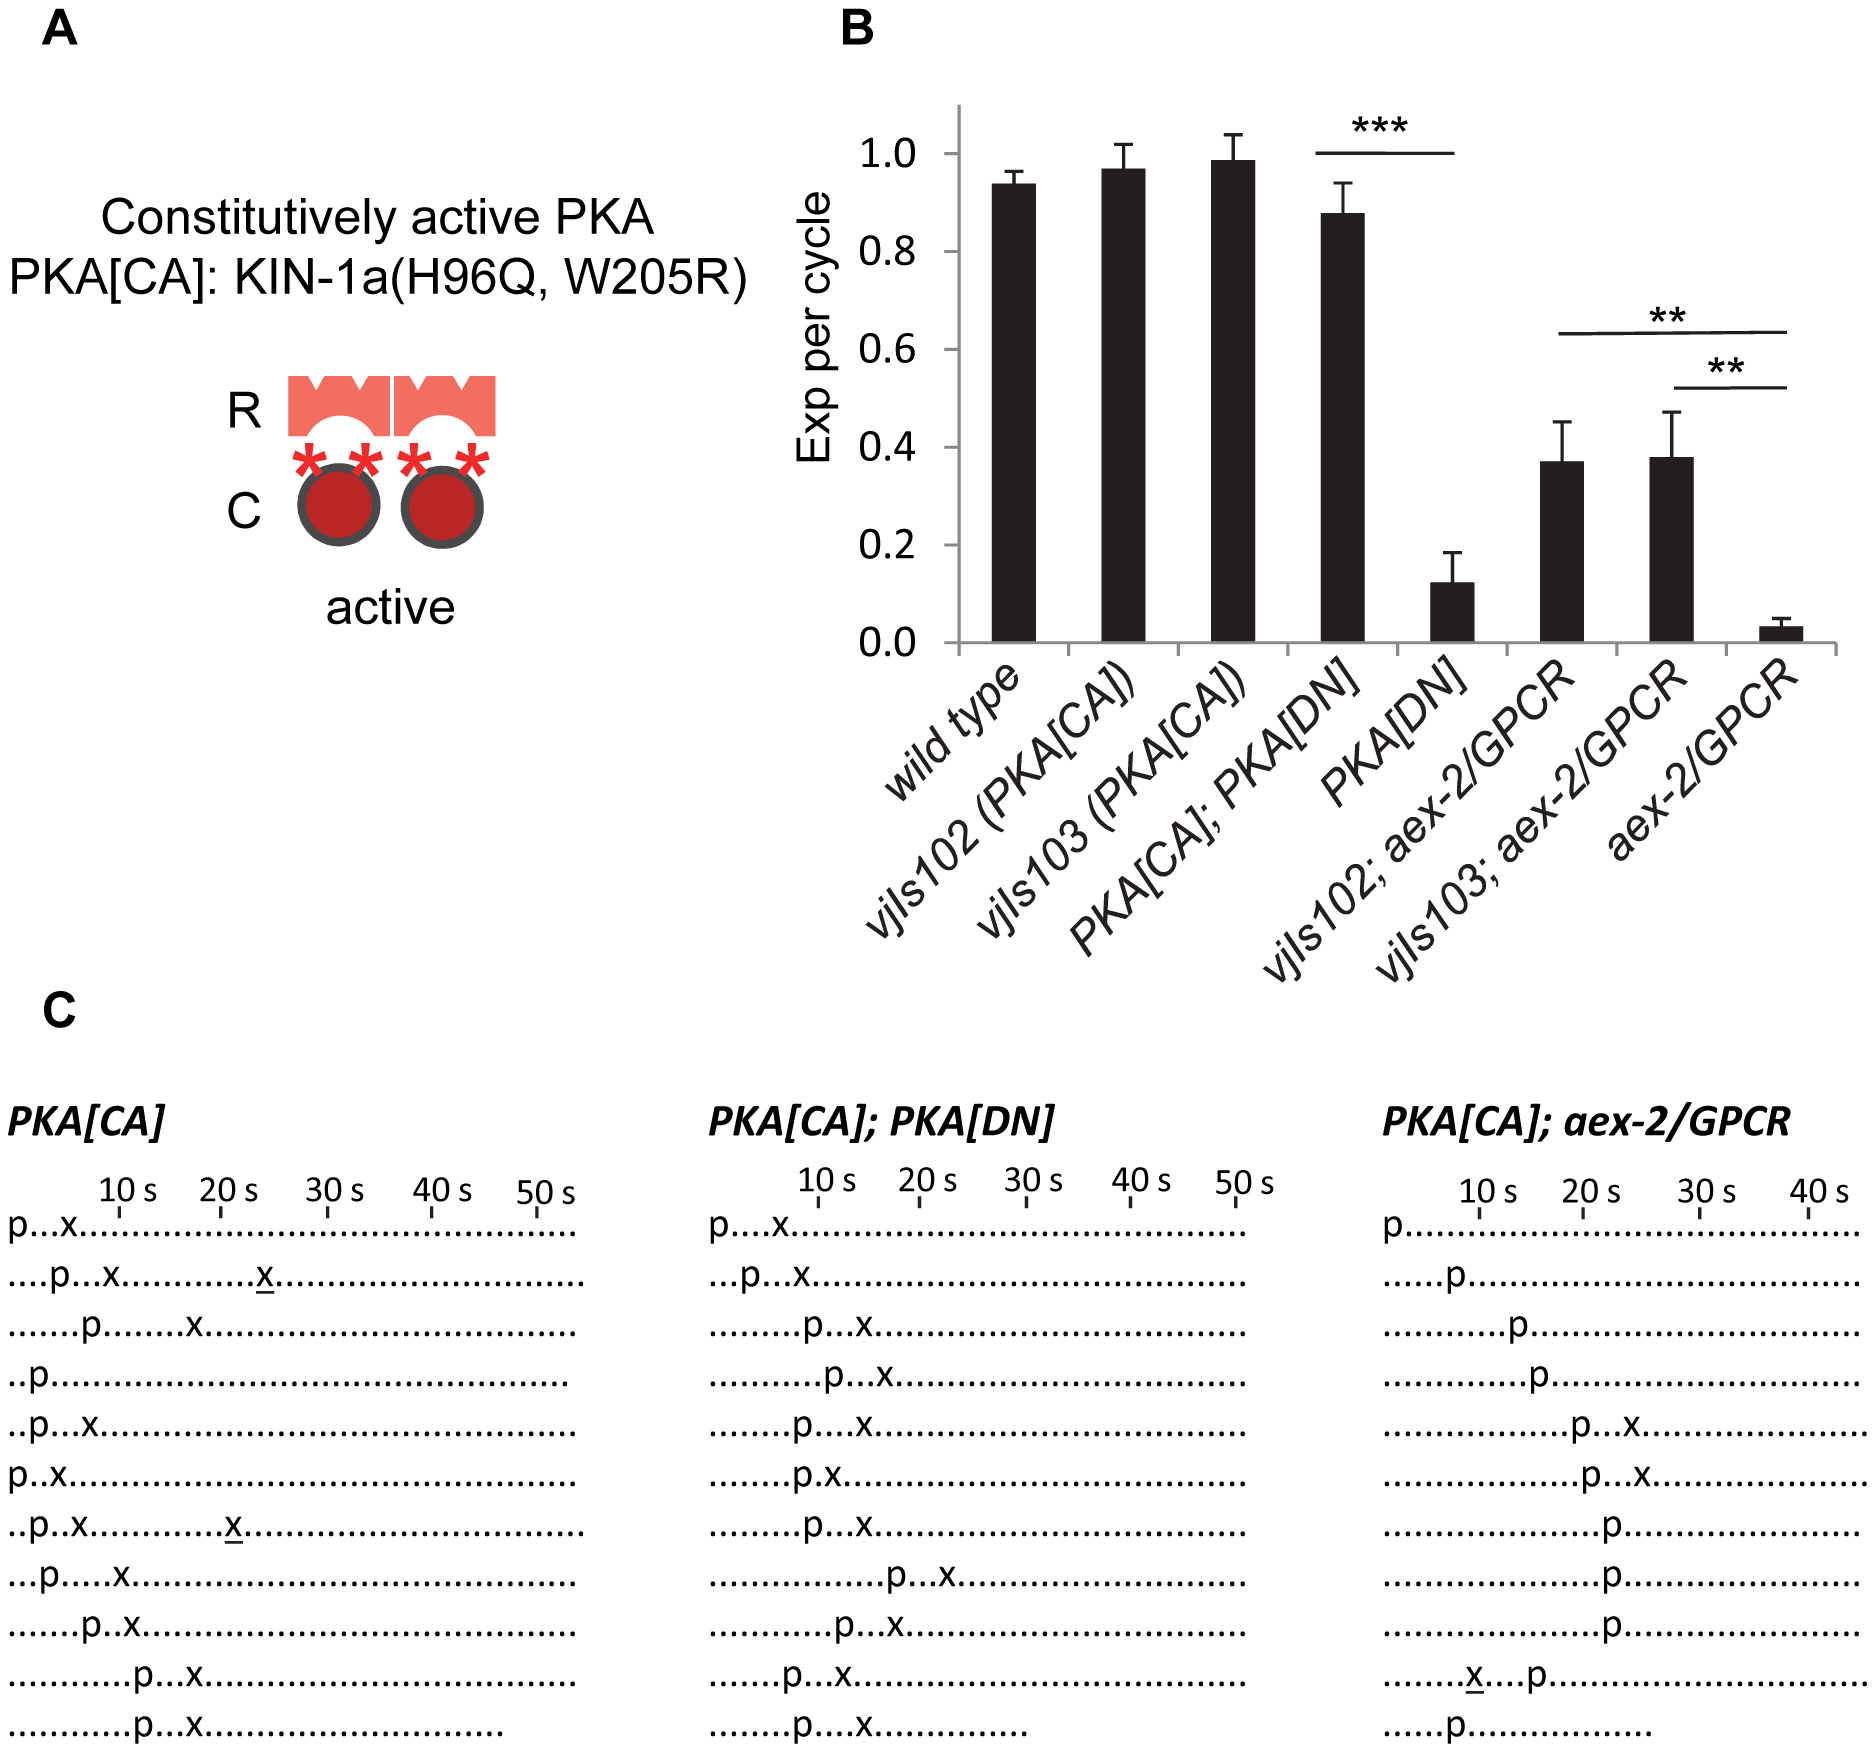 Constitutively active PKA in GABAergic neurons partially bypasses the requirement of AEX-2/GPCR.